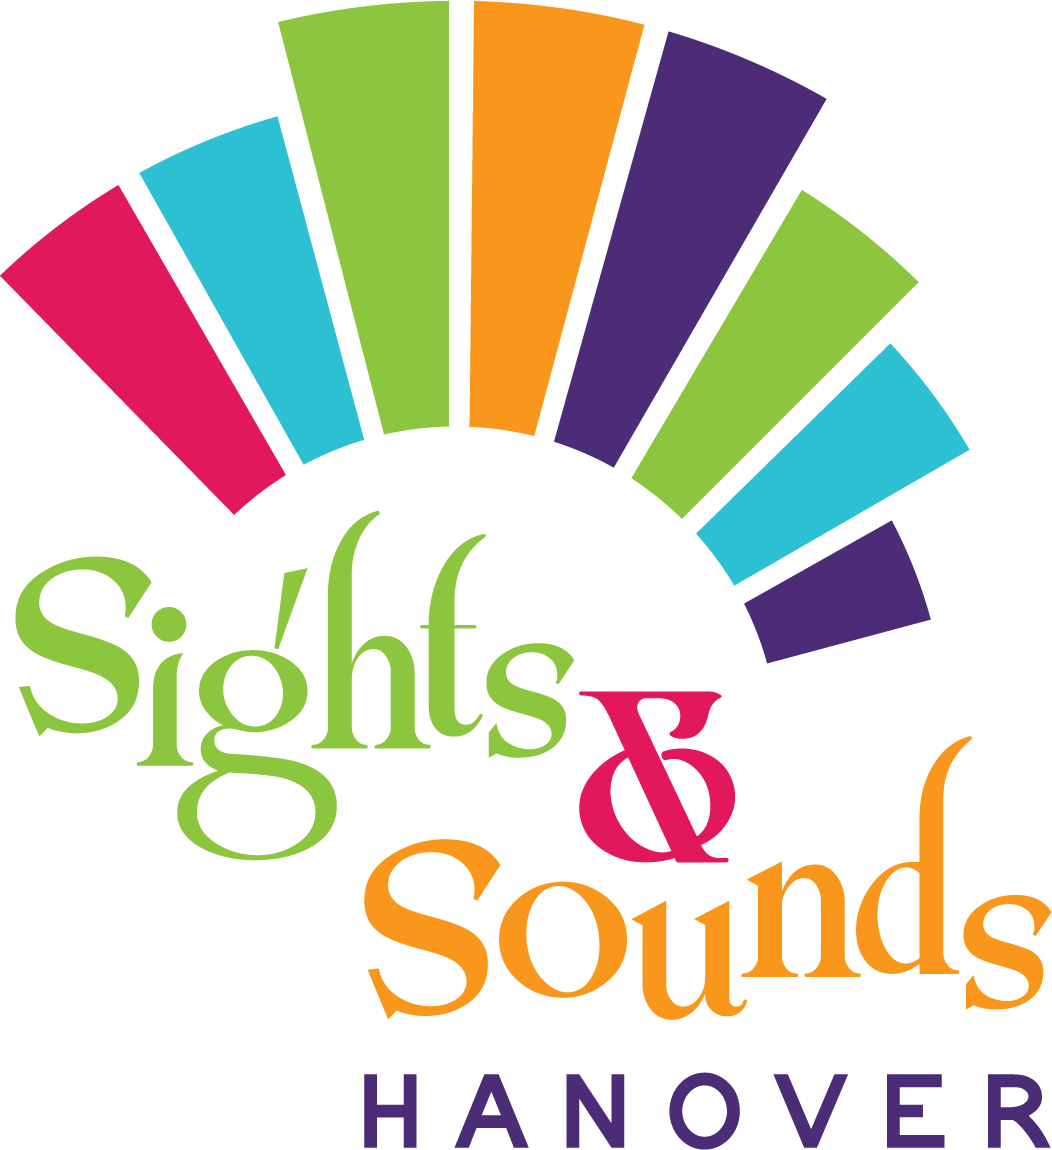 sights and sounds logo